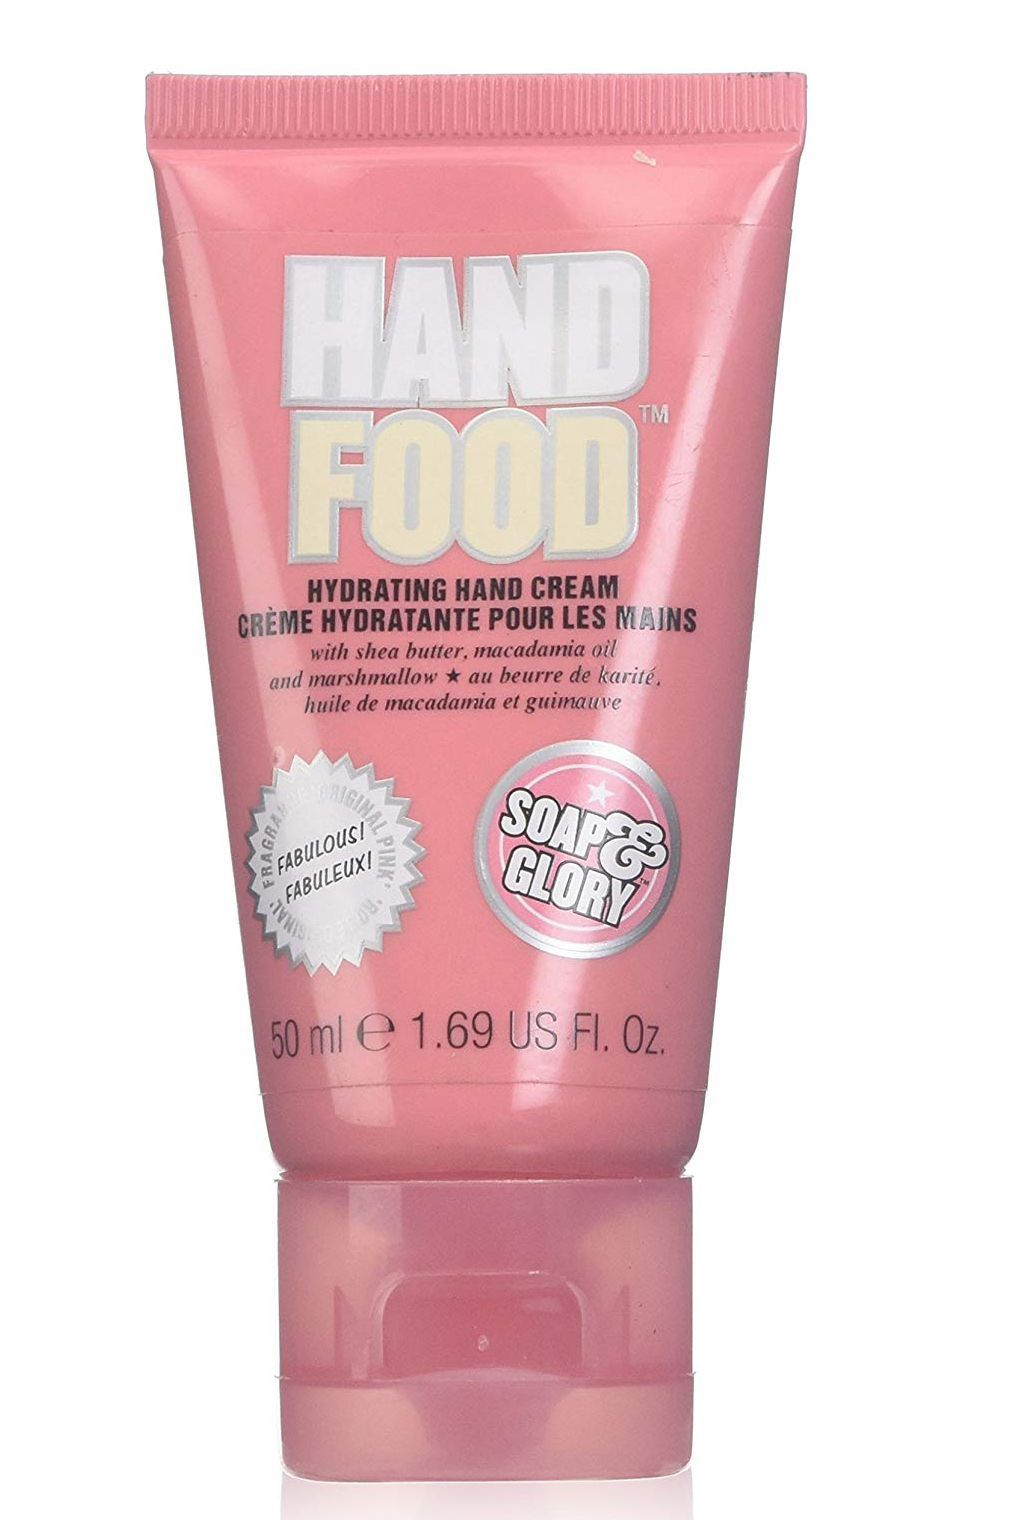 7 Best Hand Creams For Dryness Caused By Excessive Hand